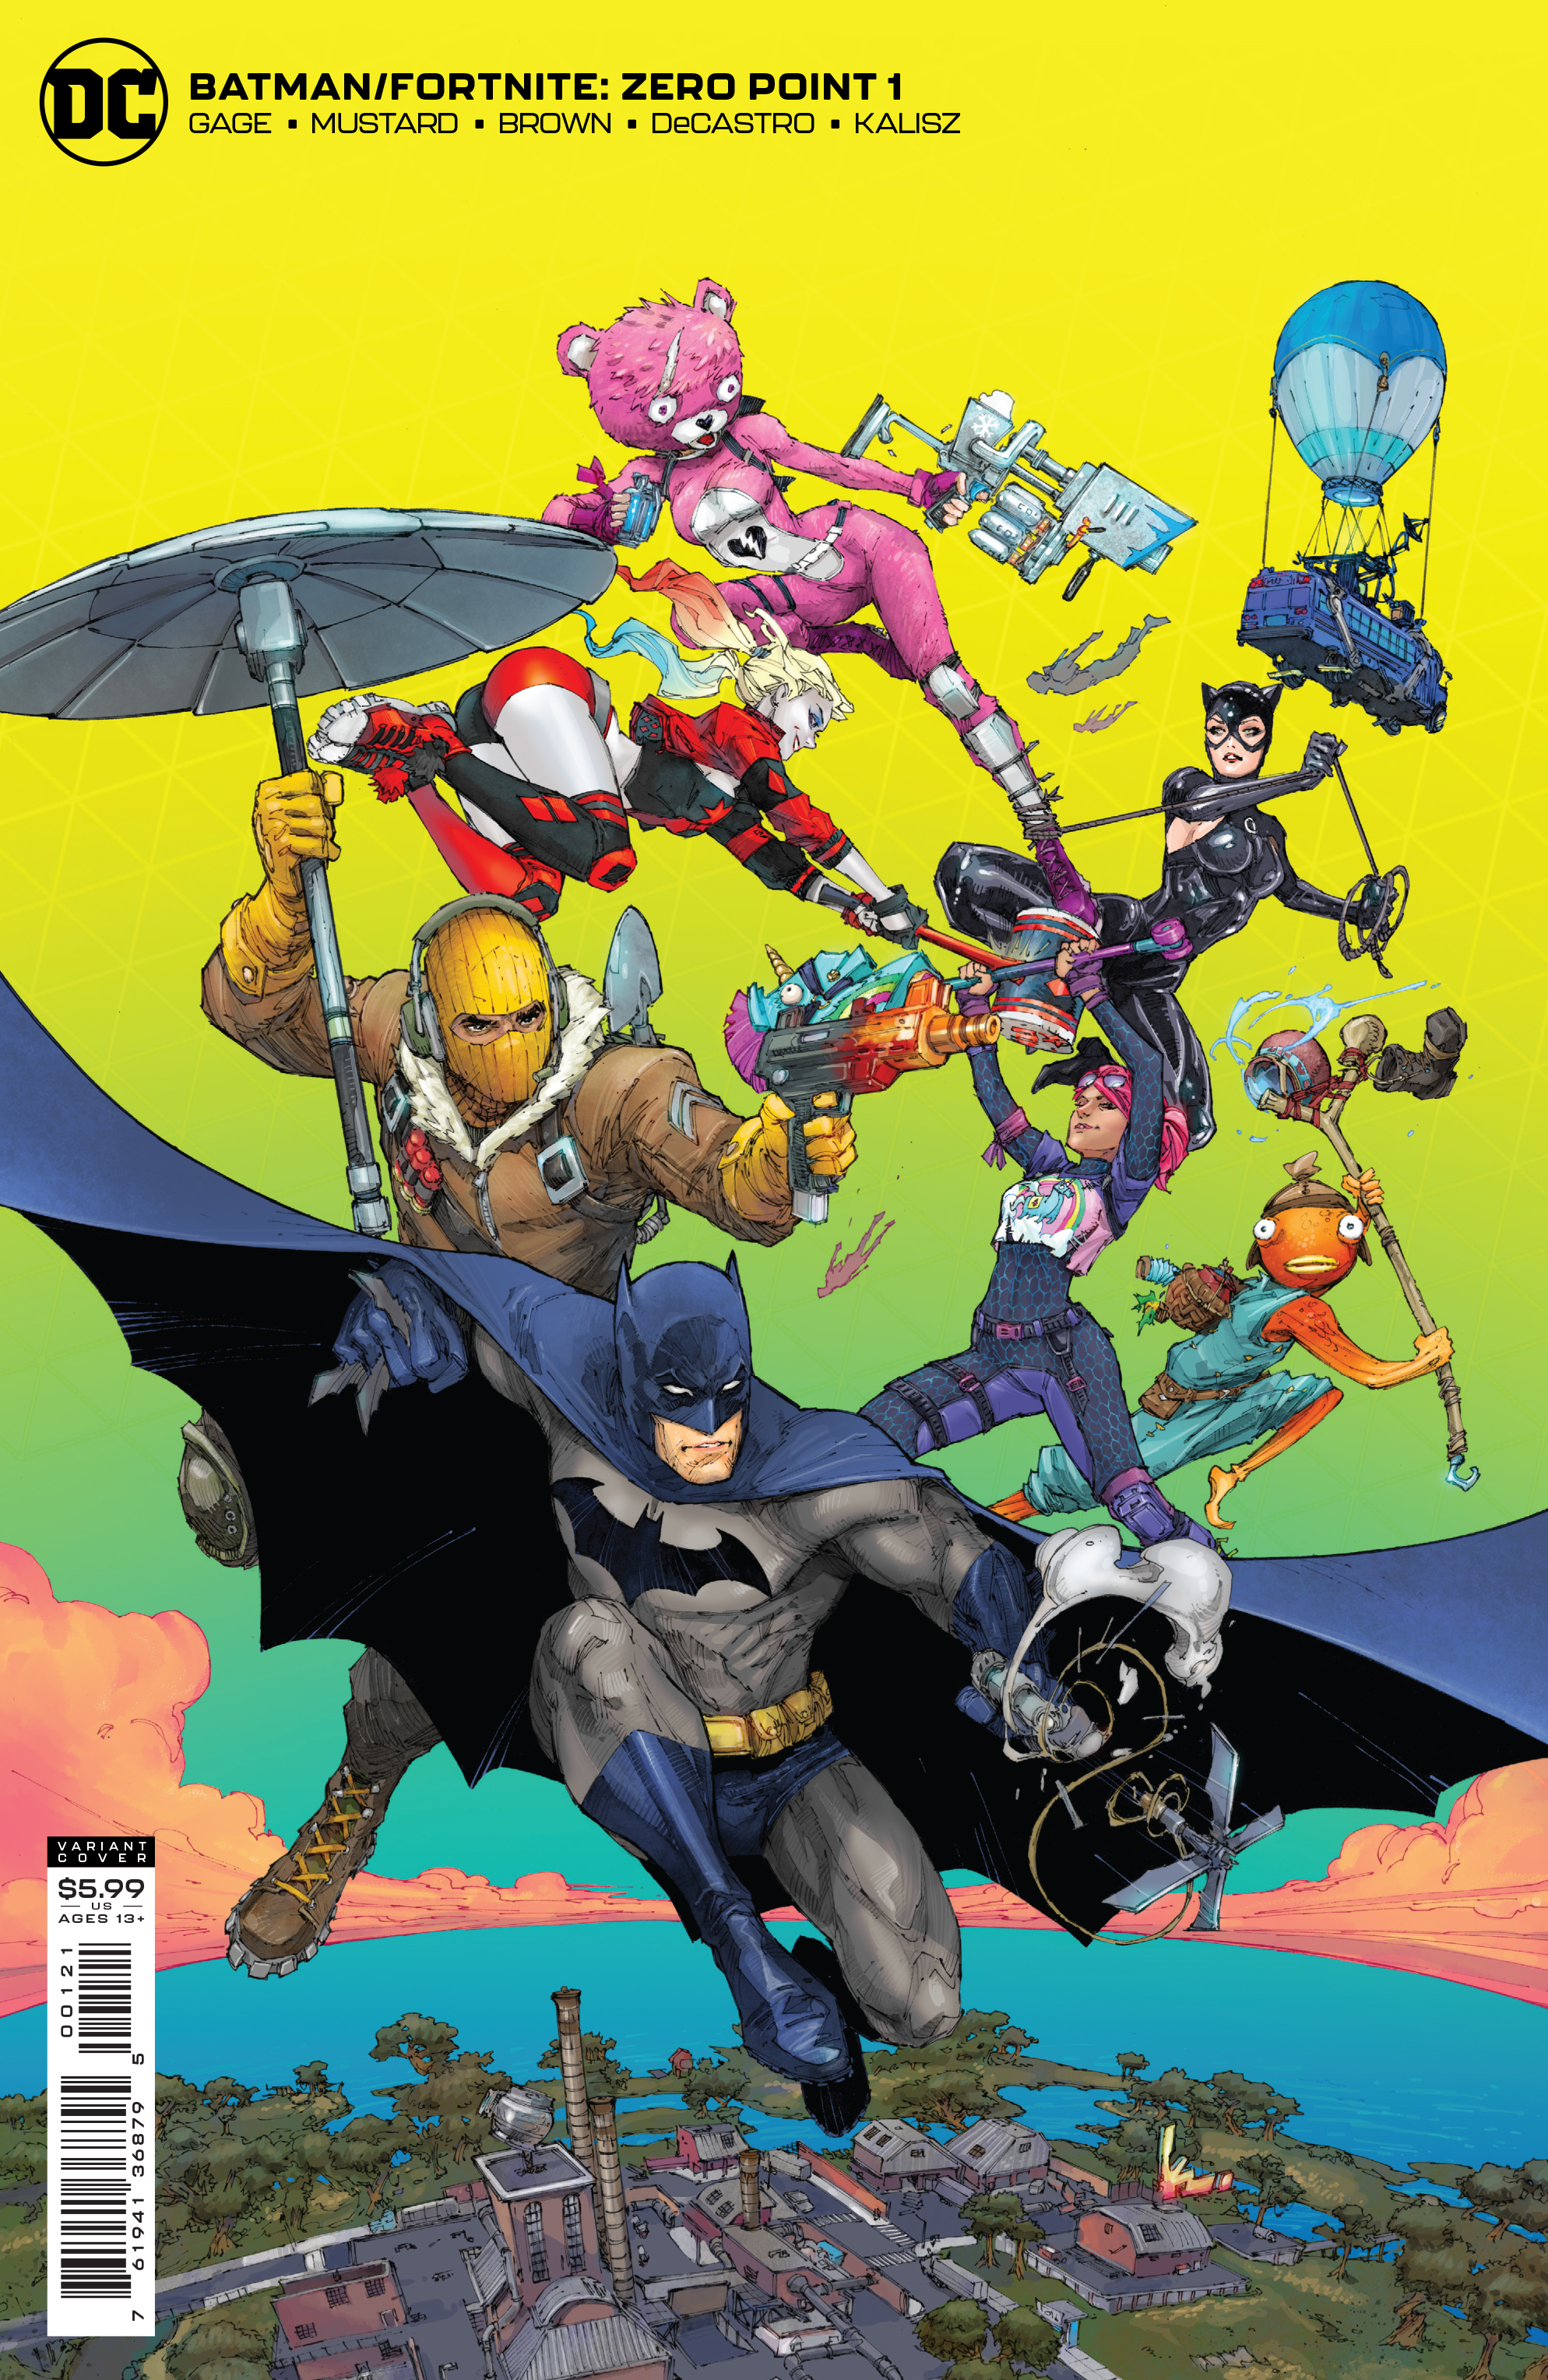 Batman - Fortnite: Zero Point  #1 Cover B - Card Stock Variant